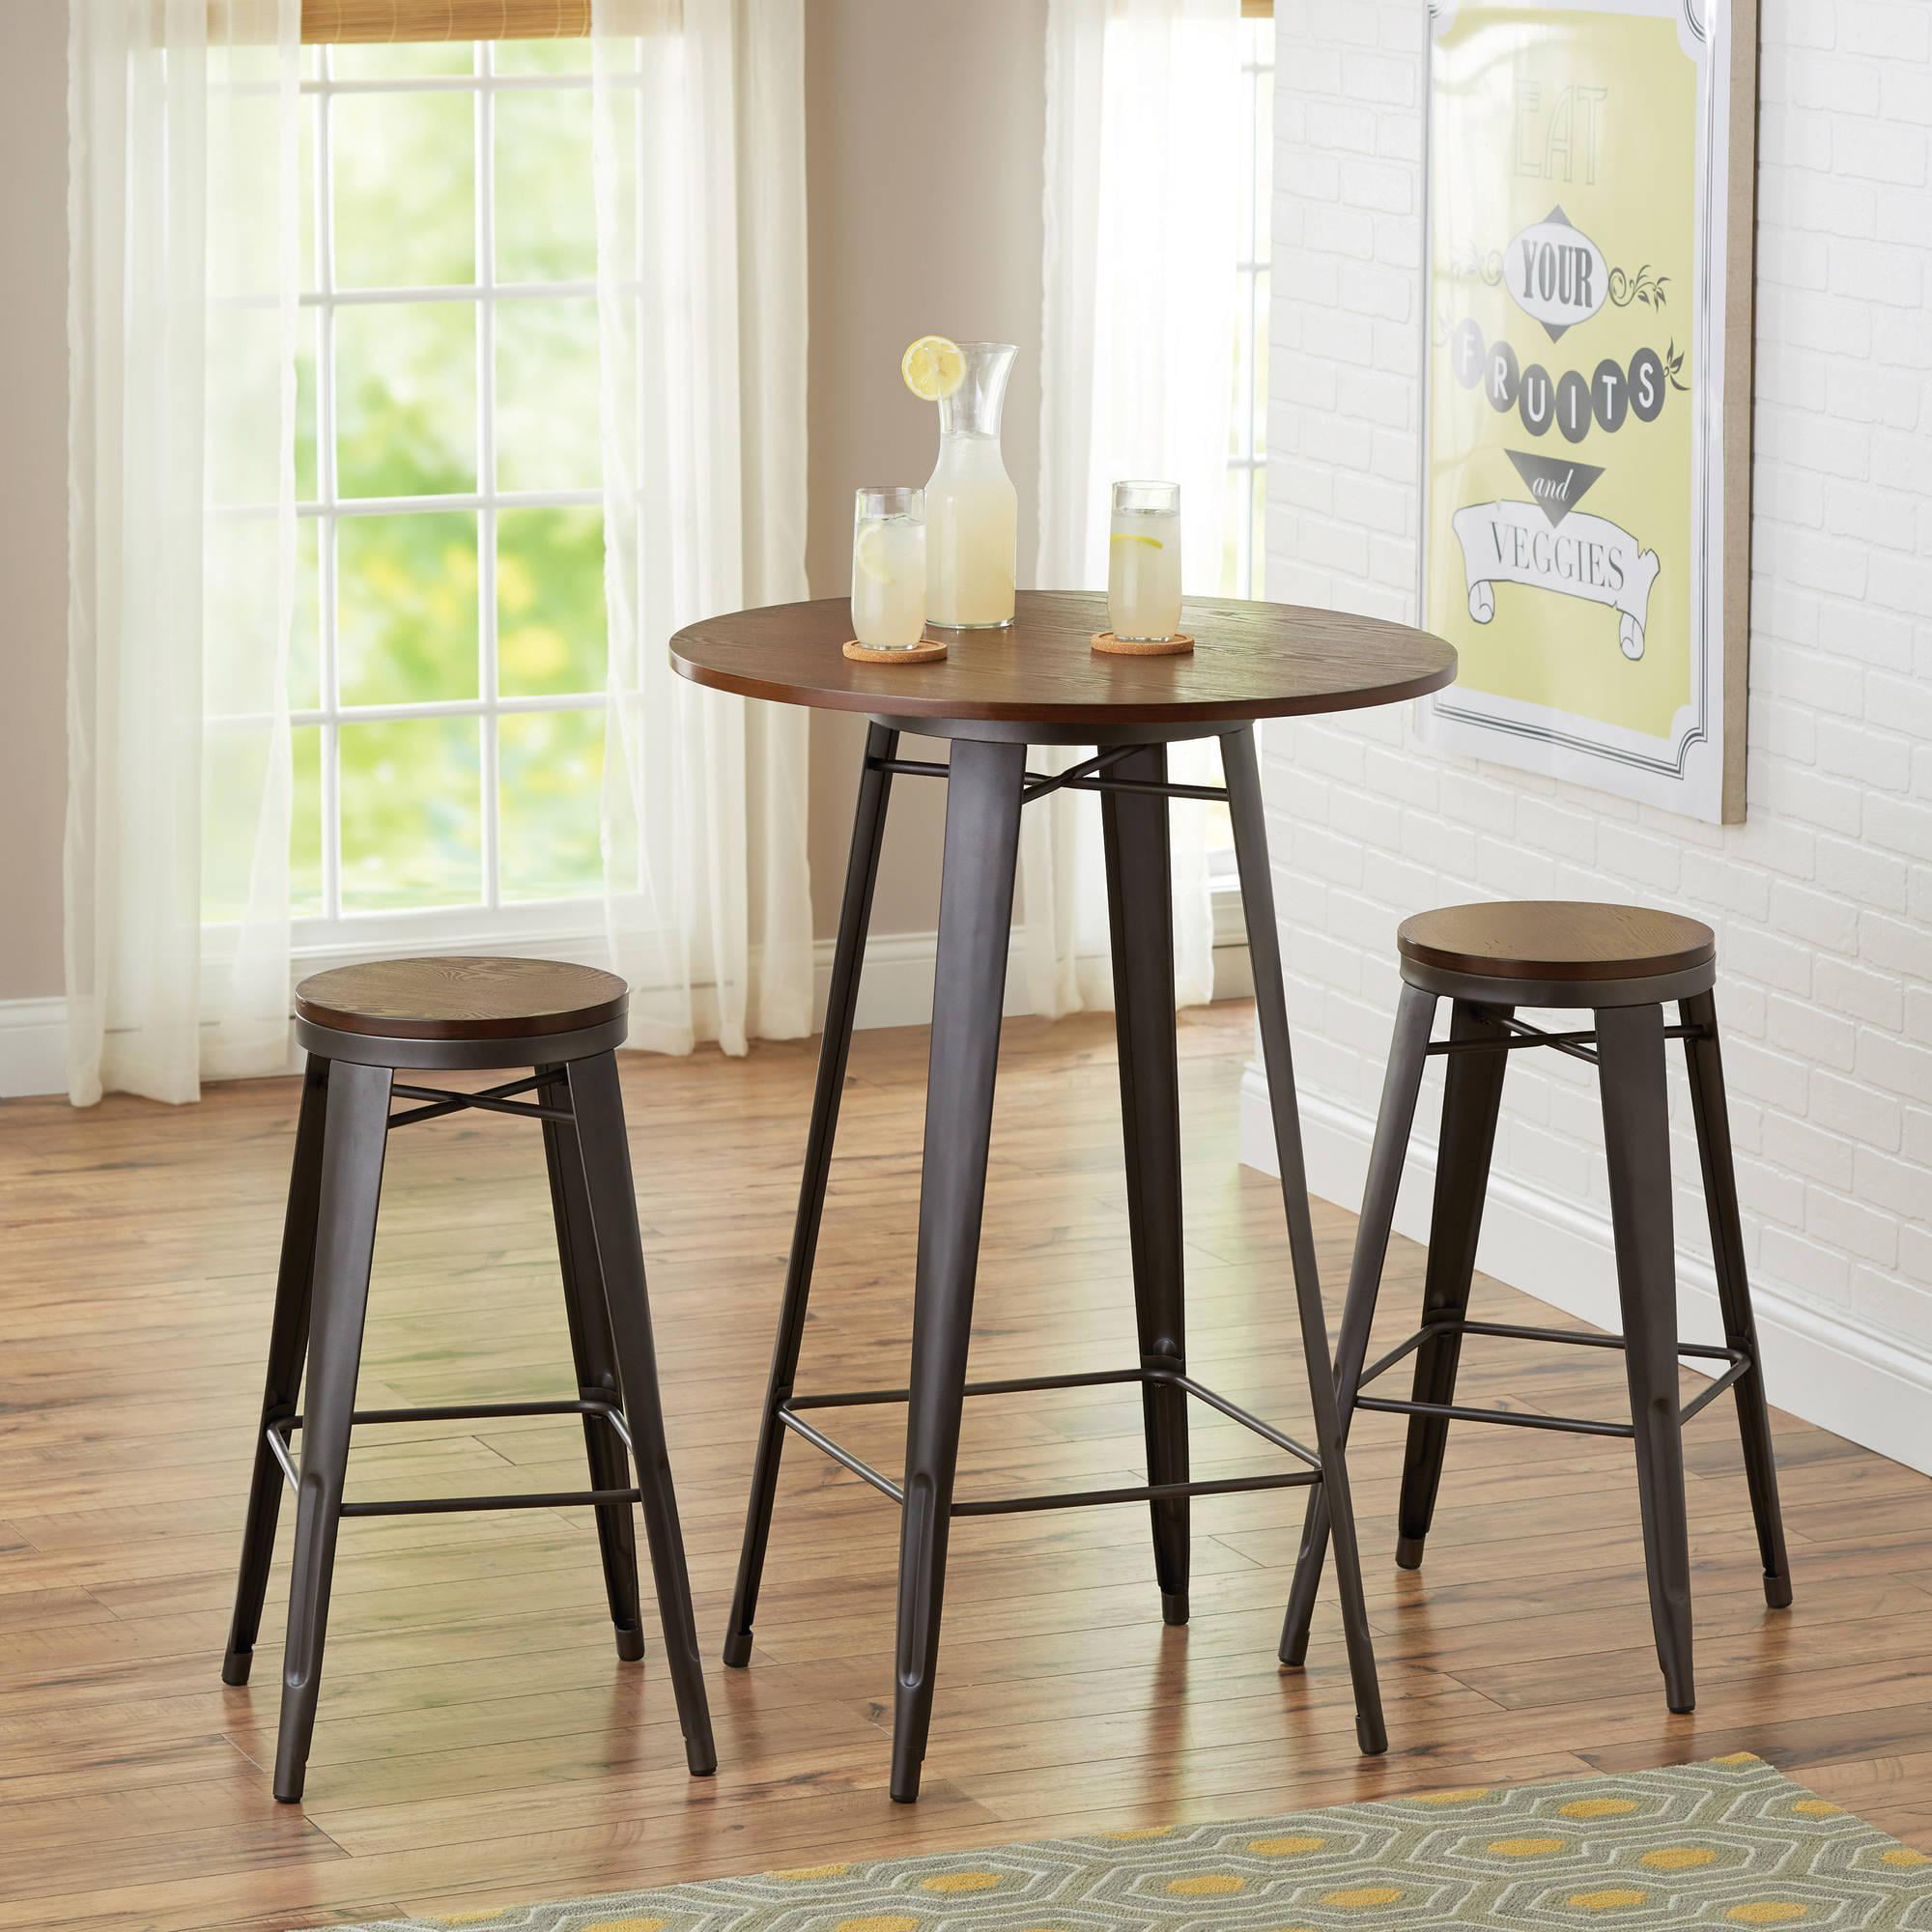 CorLiving Jericho 3-Piece Counter Height Rustic Brown Barstool and Bistro Table Set - Walmart.com & CorLiving Jericho 3-Piece Counter Height Rustic Brown Barstool and ...